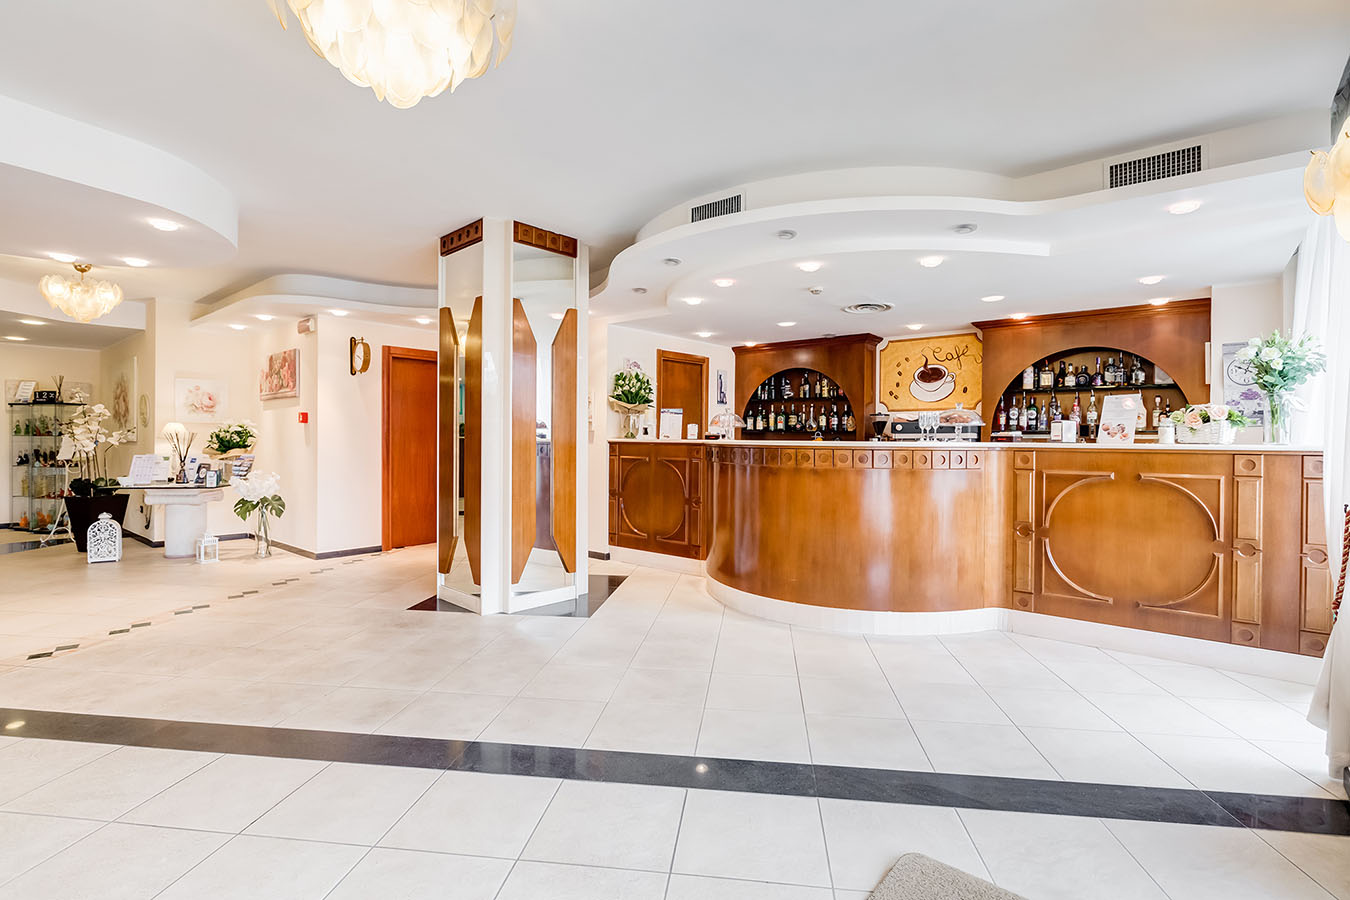 Castellammare di Stabia - Sure Hotel Collection Europa Stabia Hotel